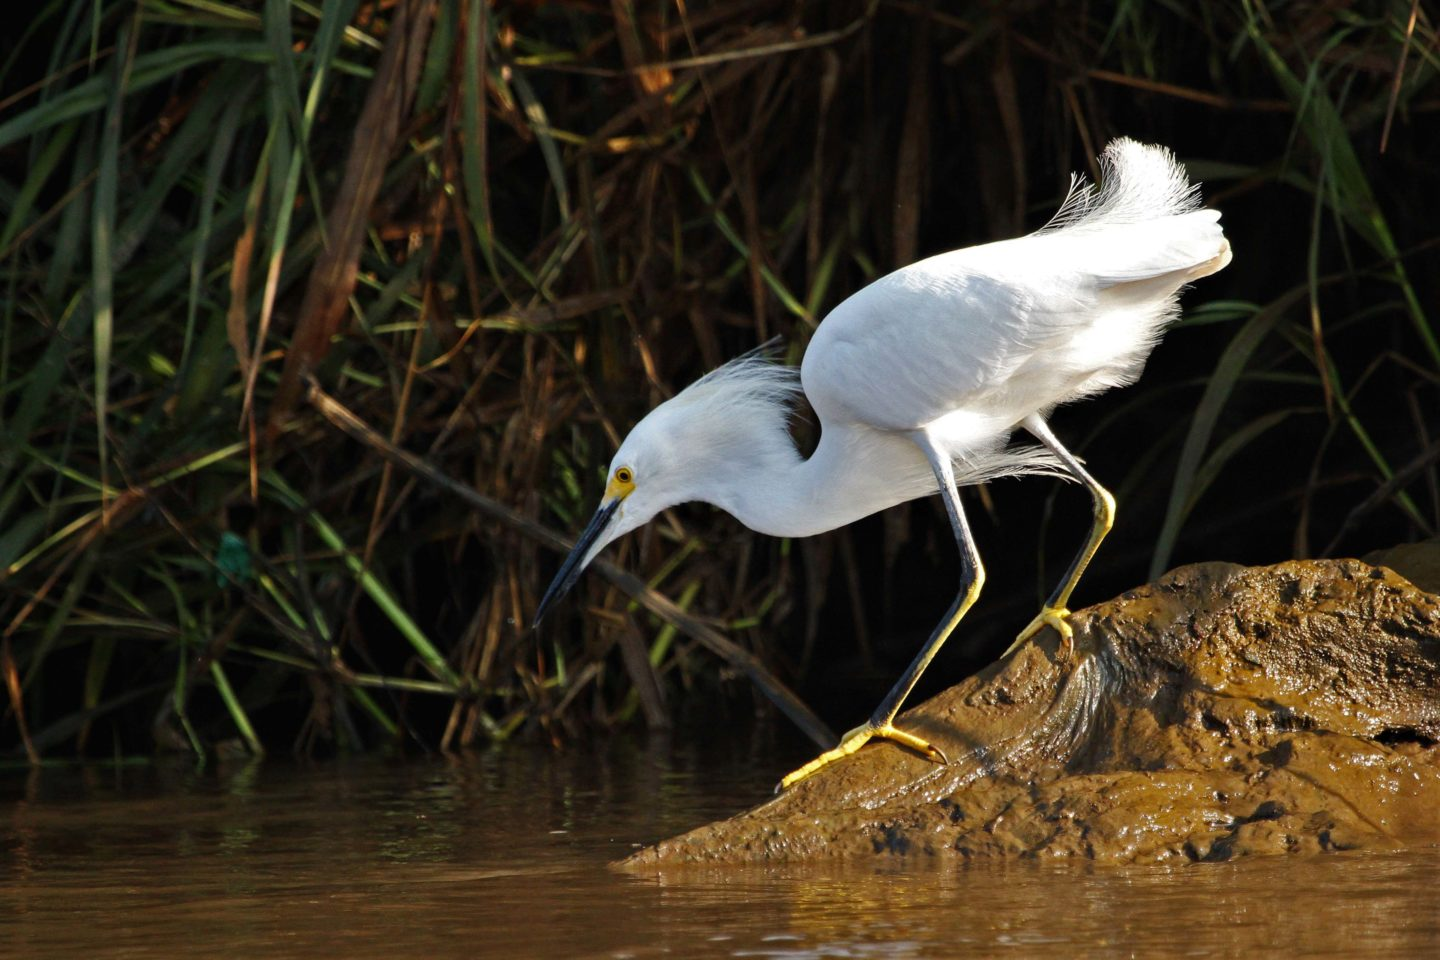 Snowy Egret on bank of the Rio Tarcoles, Costa Rica